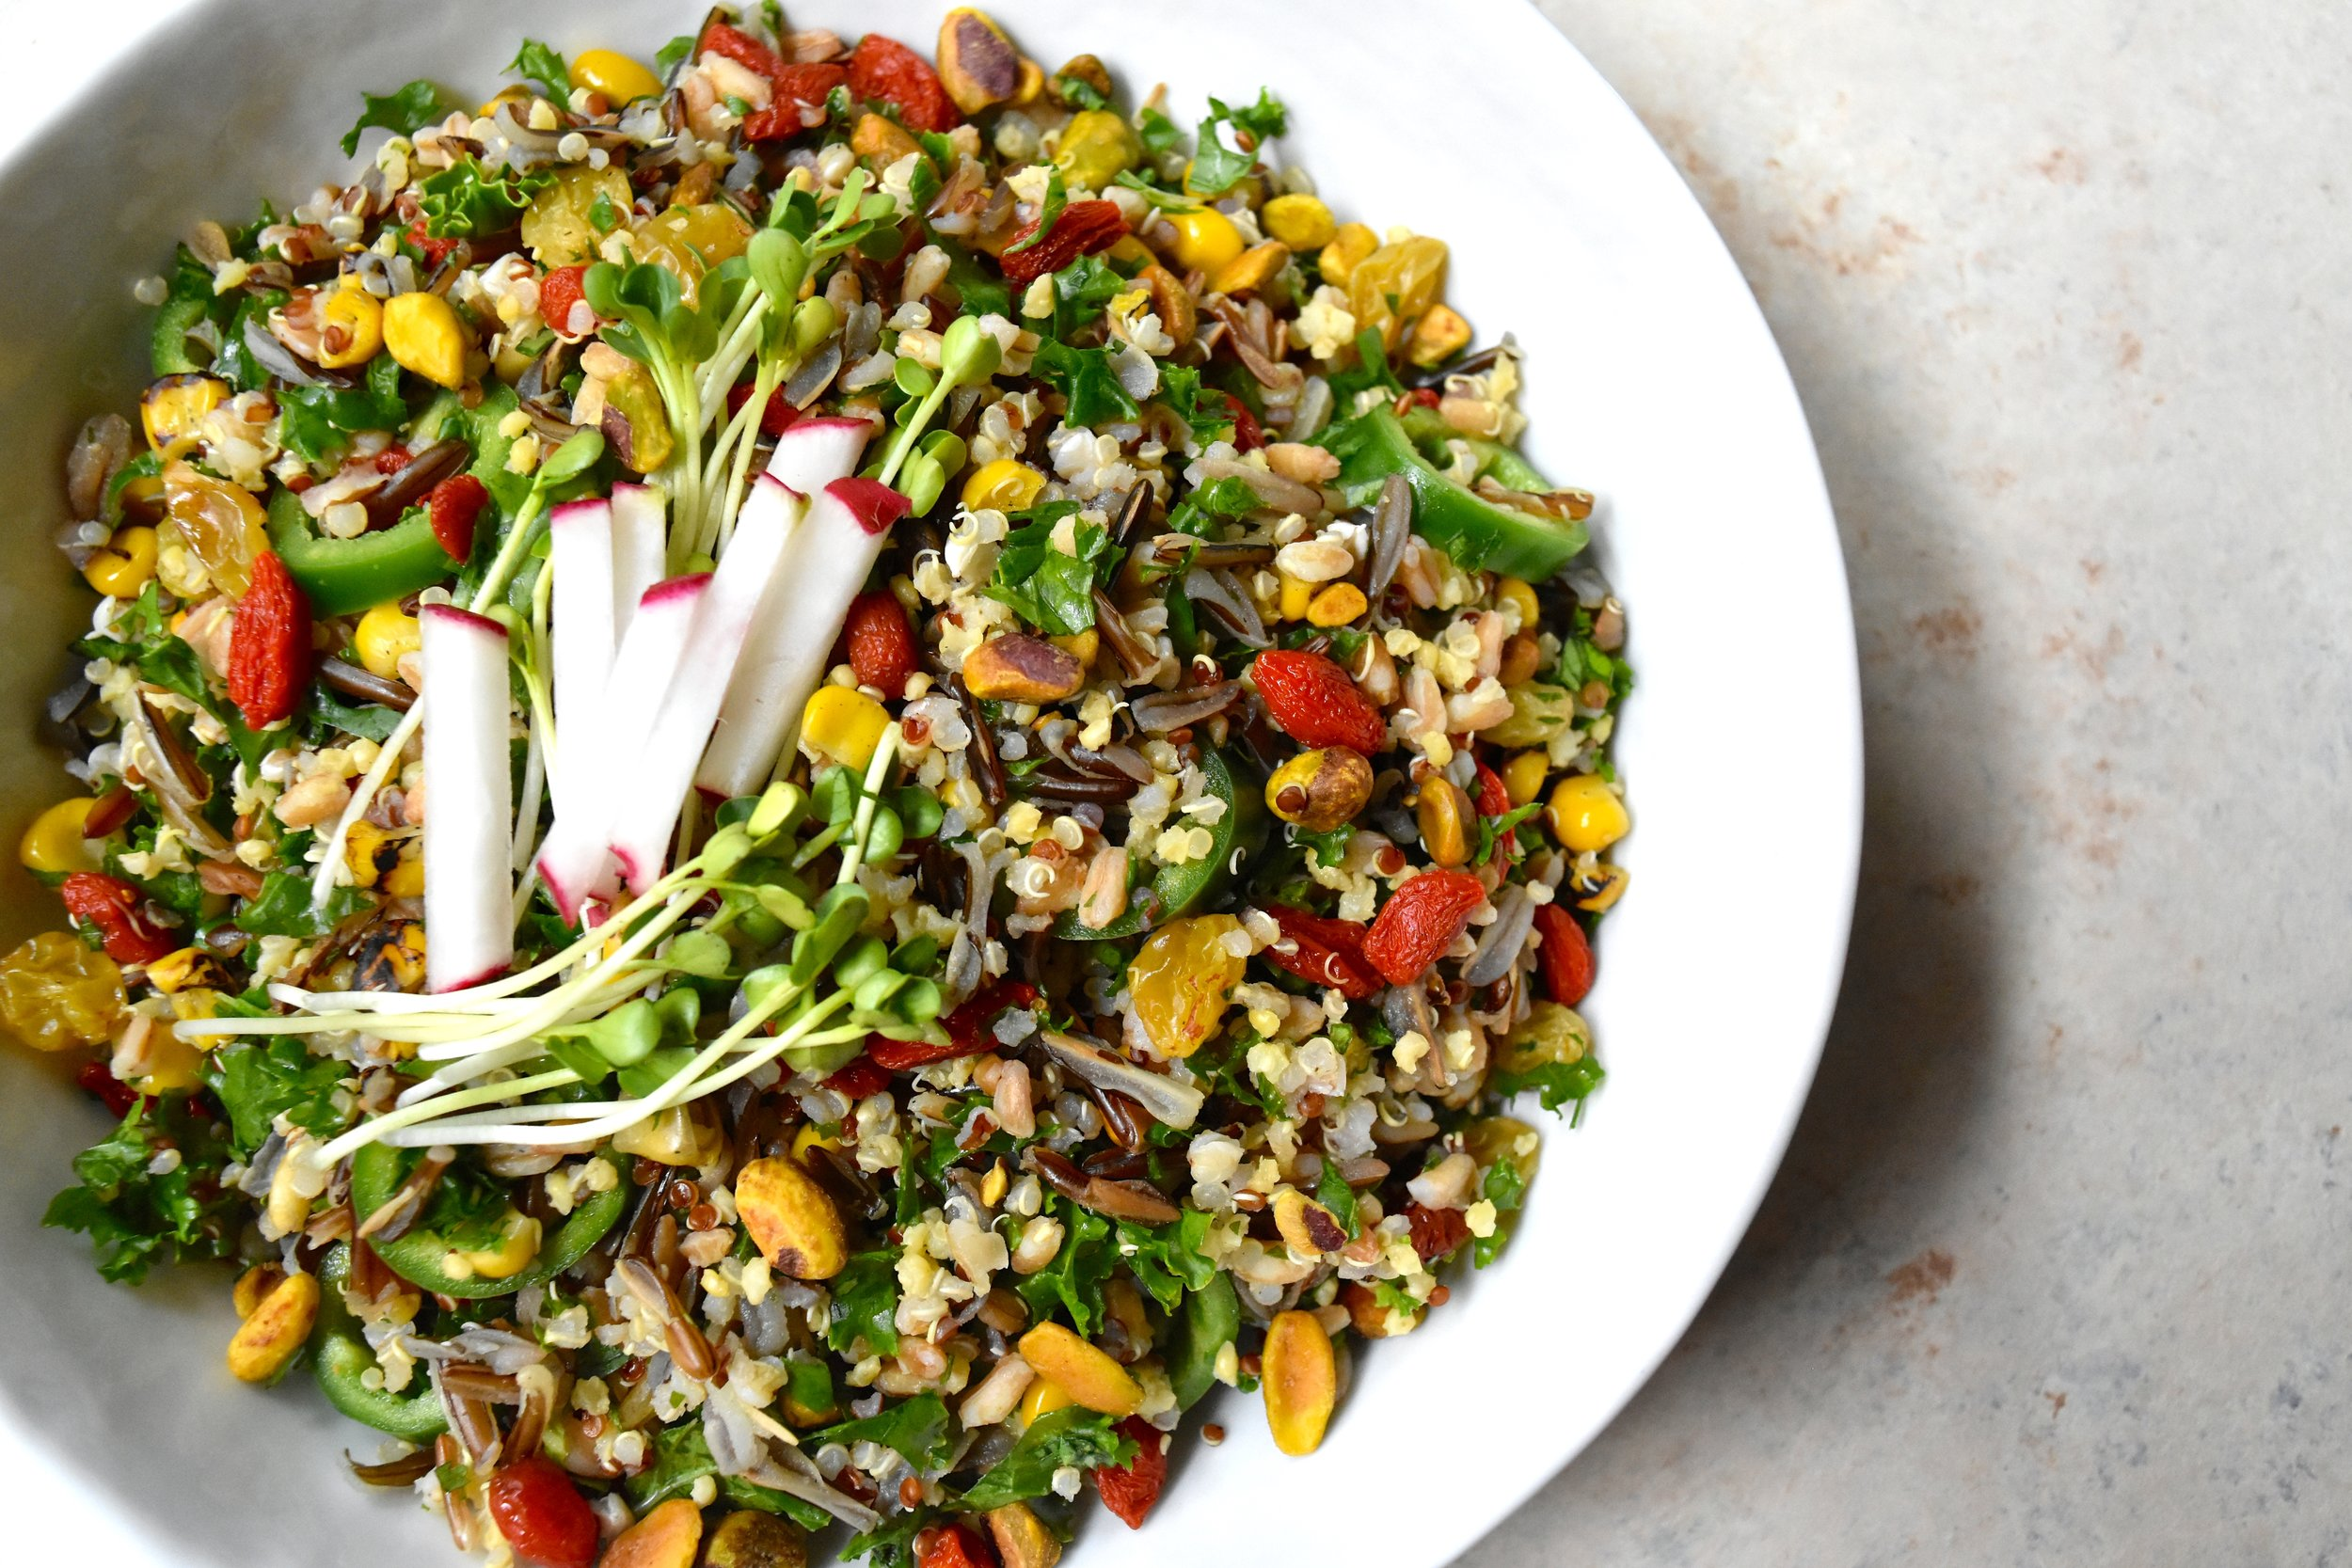 Superfood Grain Salad 2